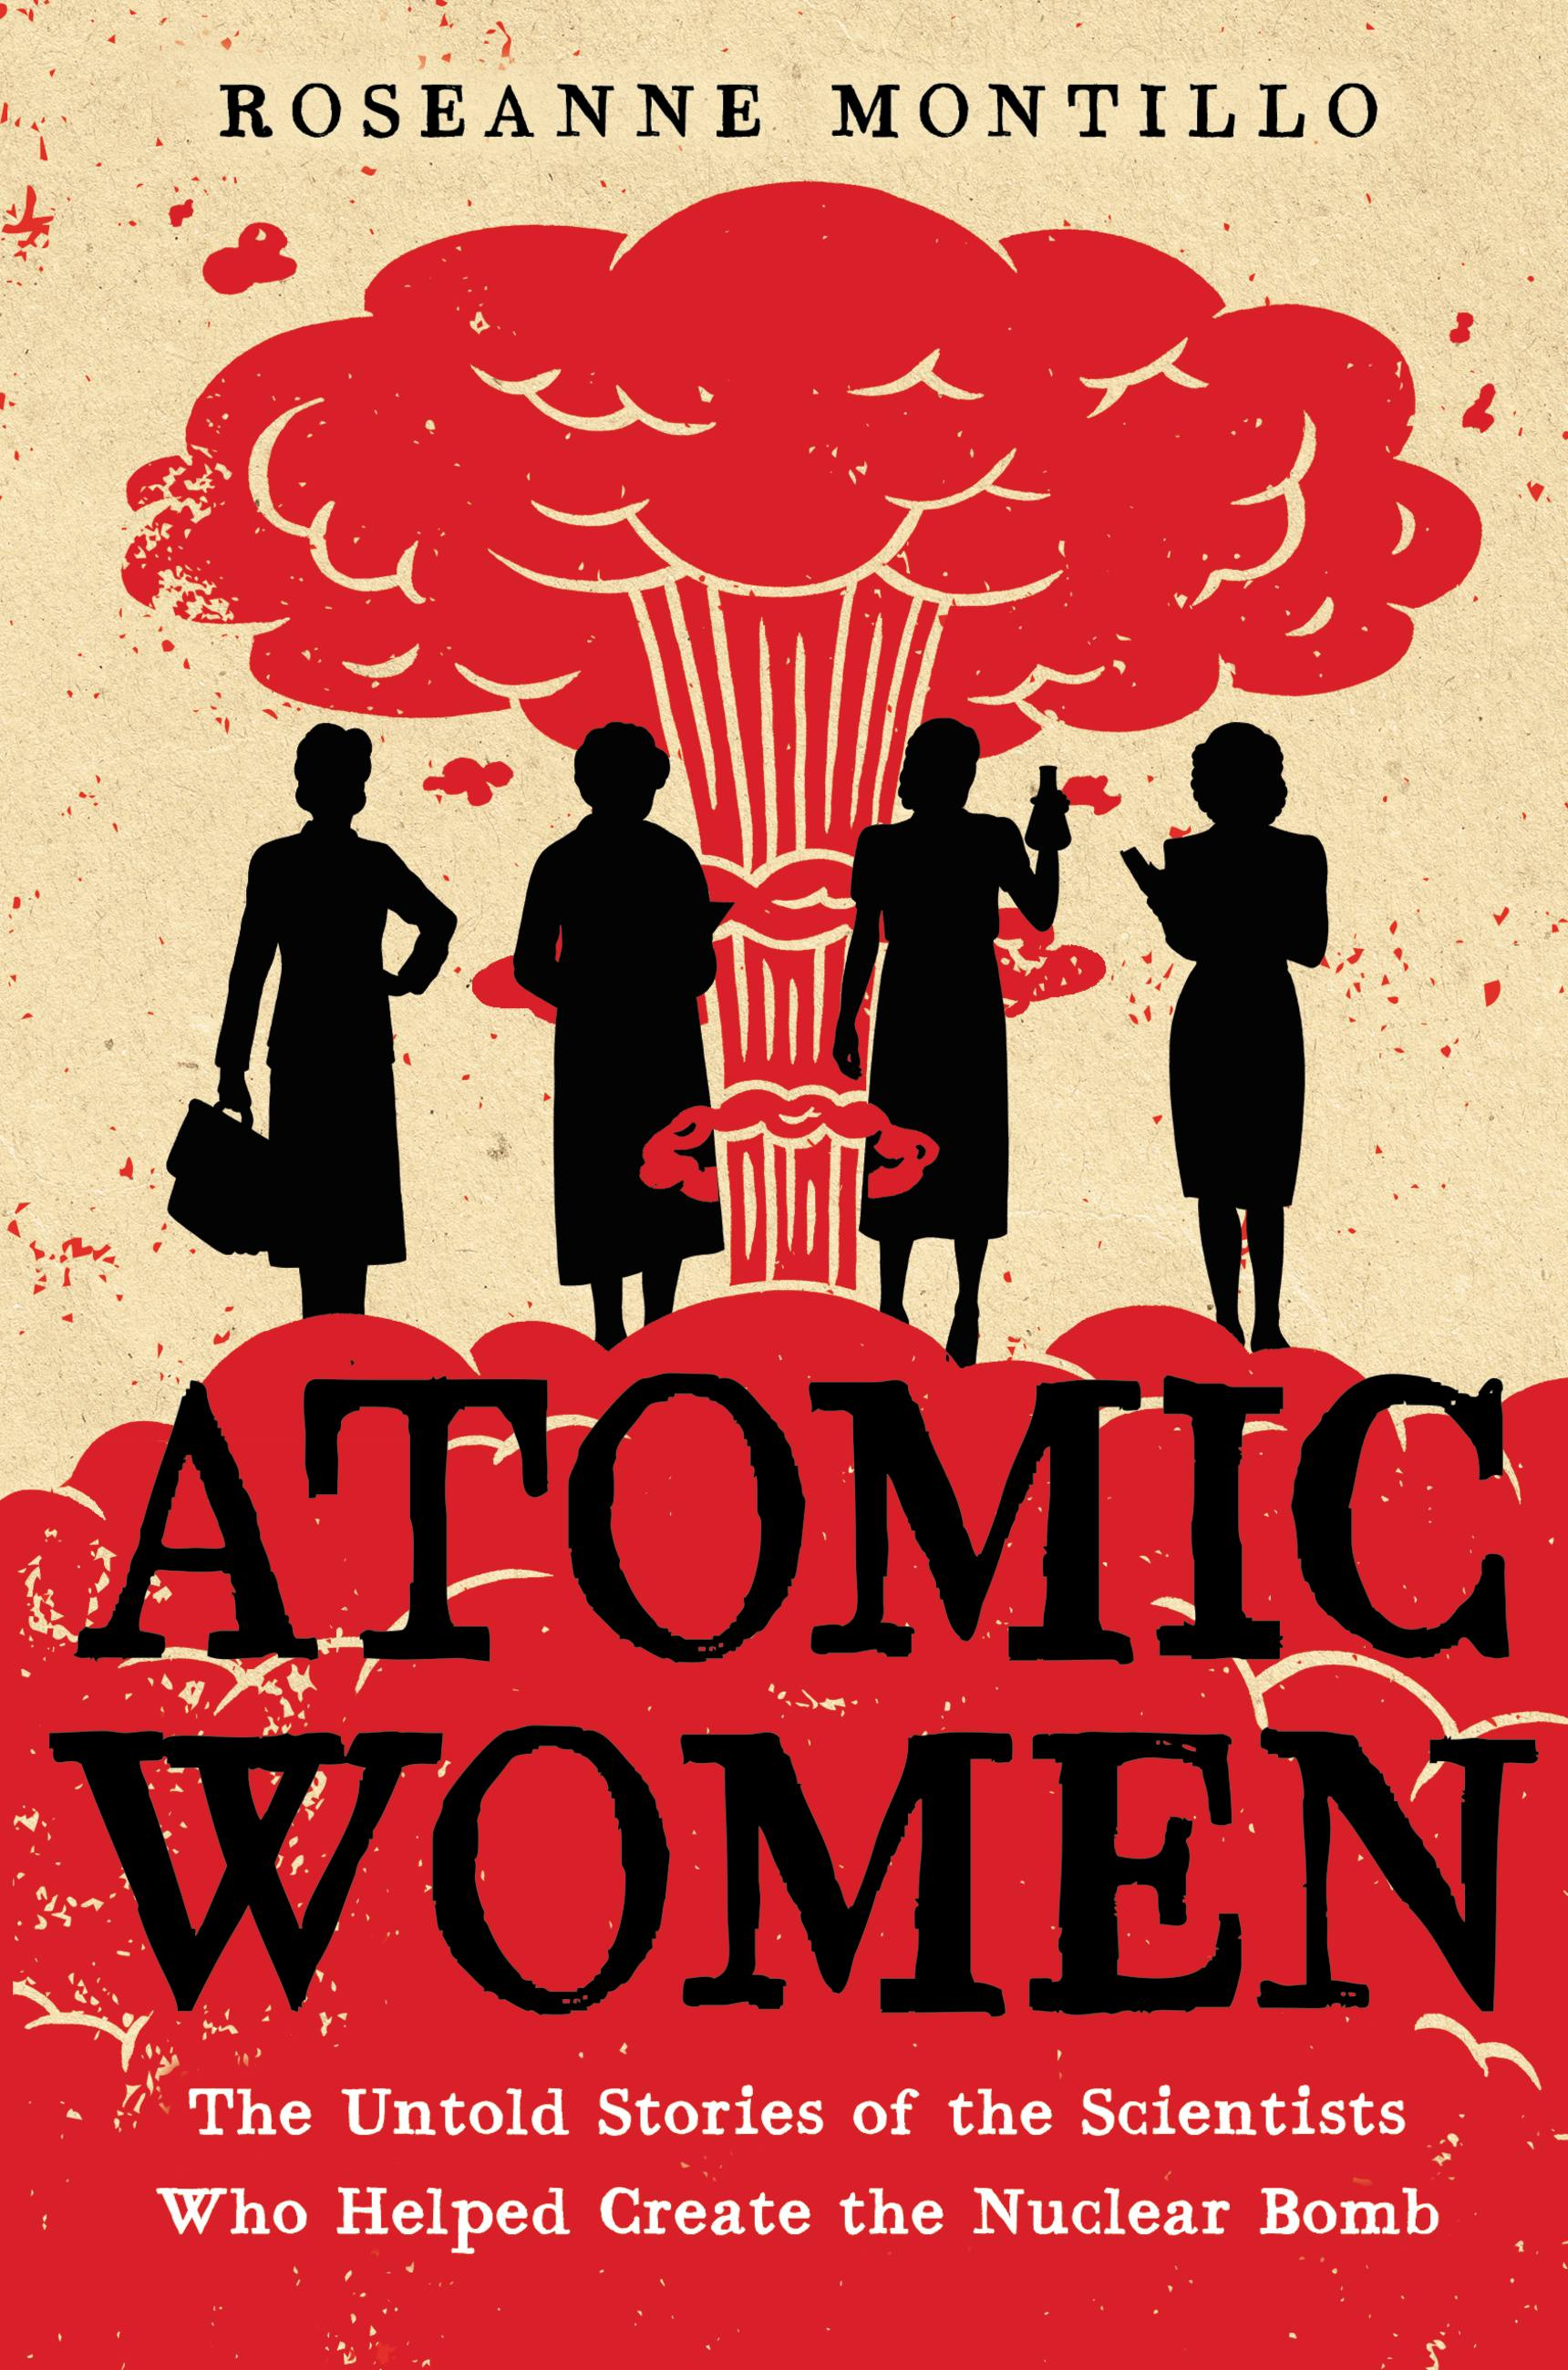 Atomic Women The Untold Stories of the Scientists Who Helped Create the Nuclear Bomb